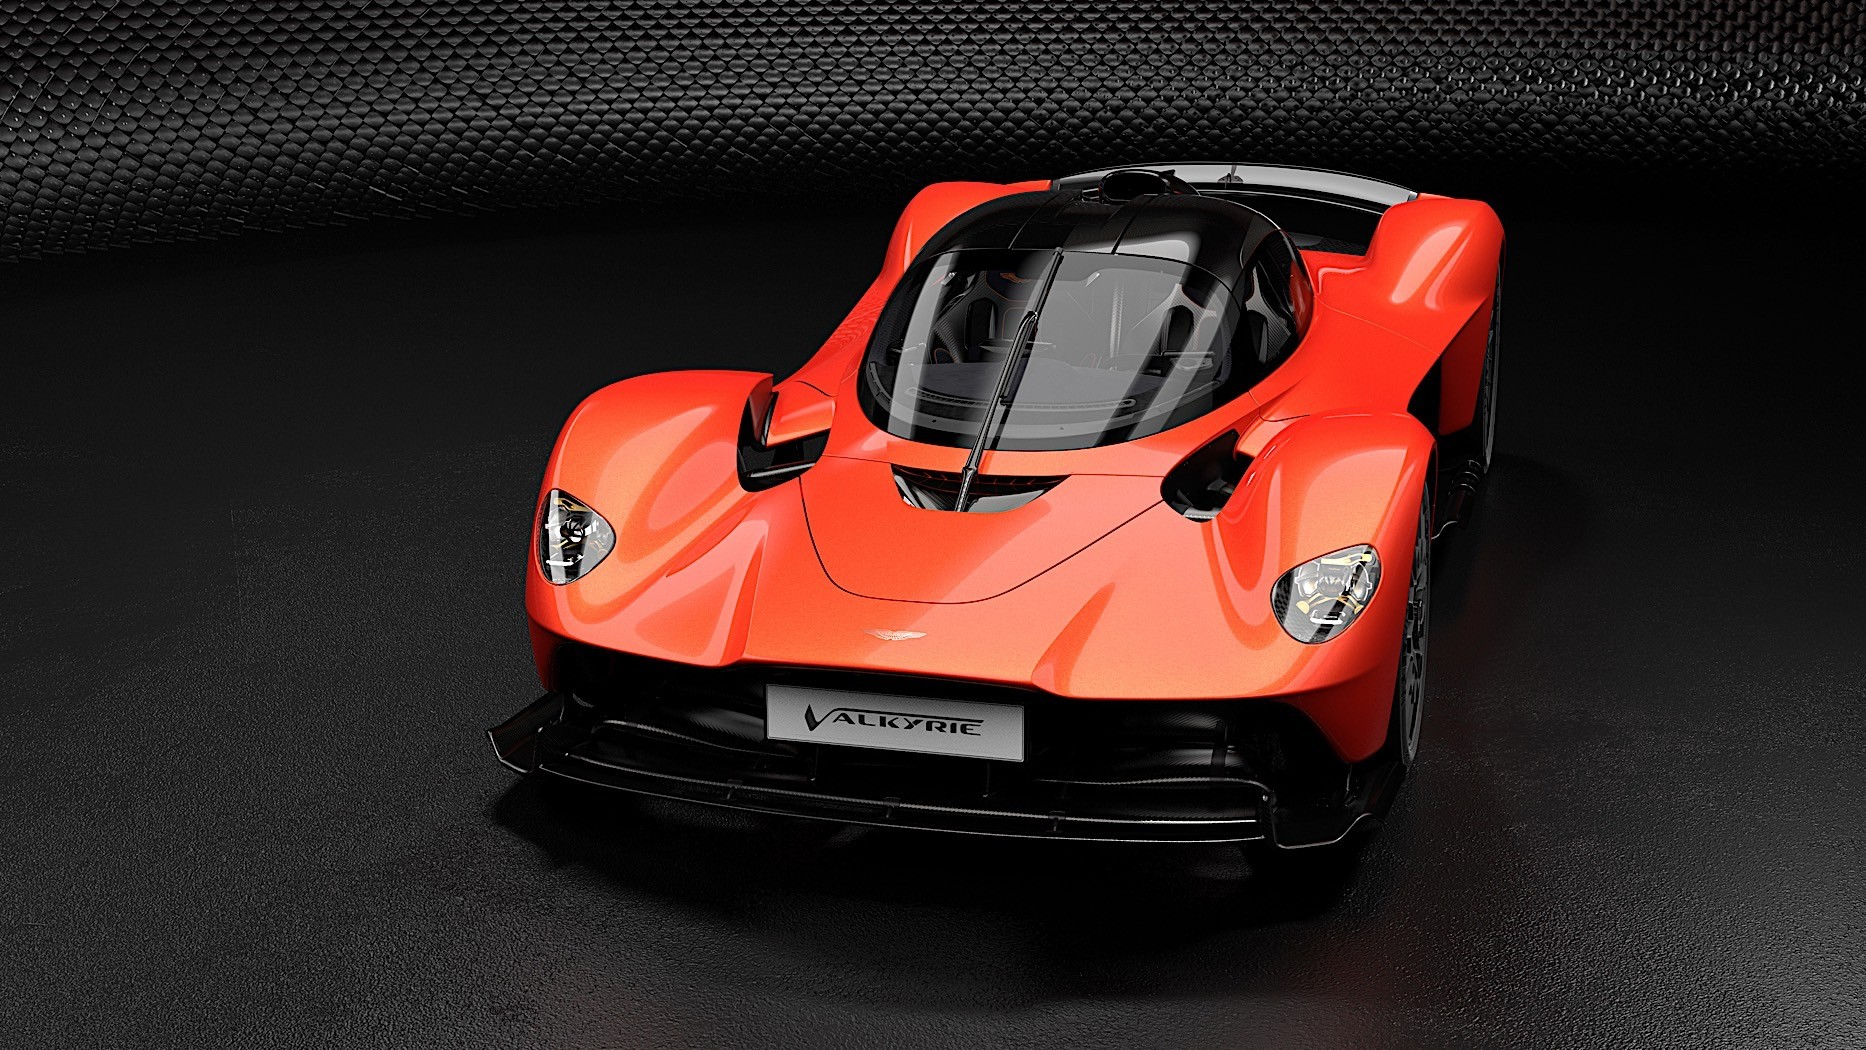 Aston Martin's Valkyrie officially has 1,160 horsepower